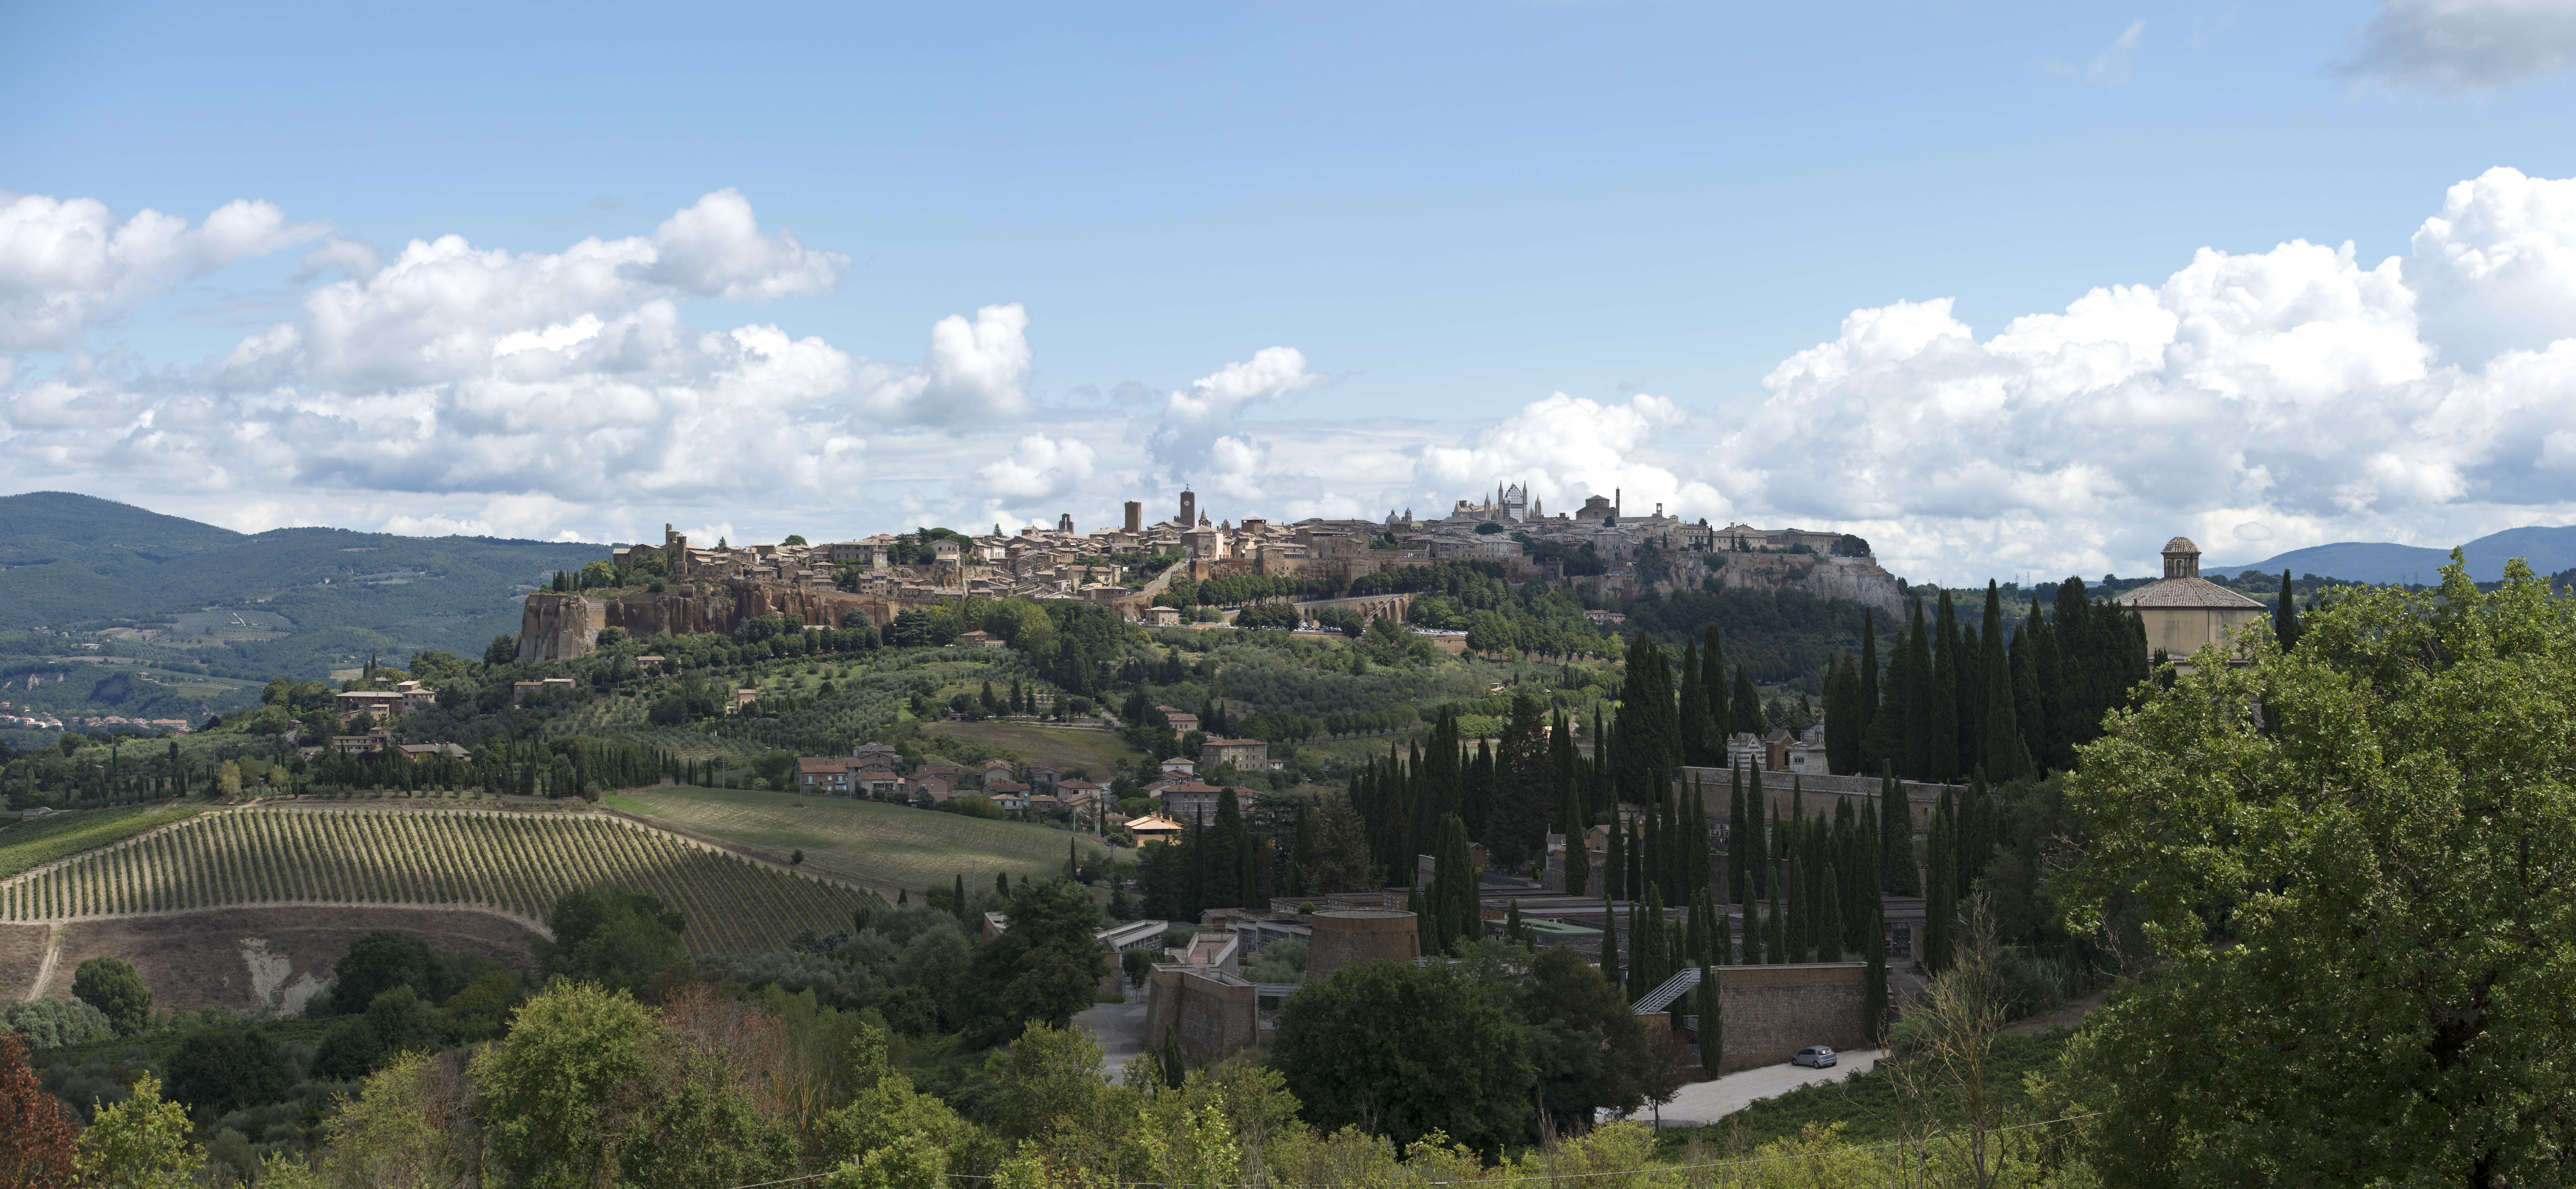 Umbria_Orvieto_from_the_hills_01